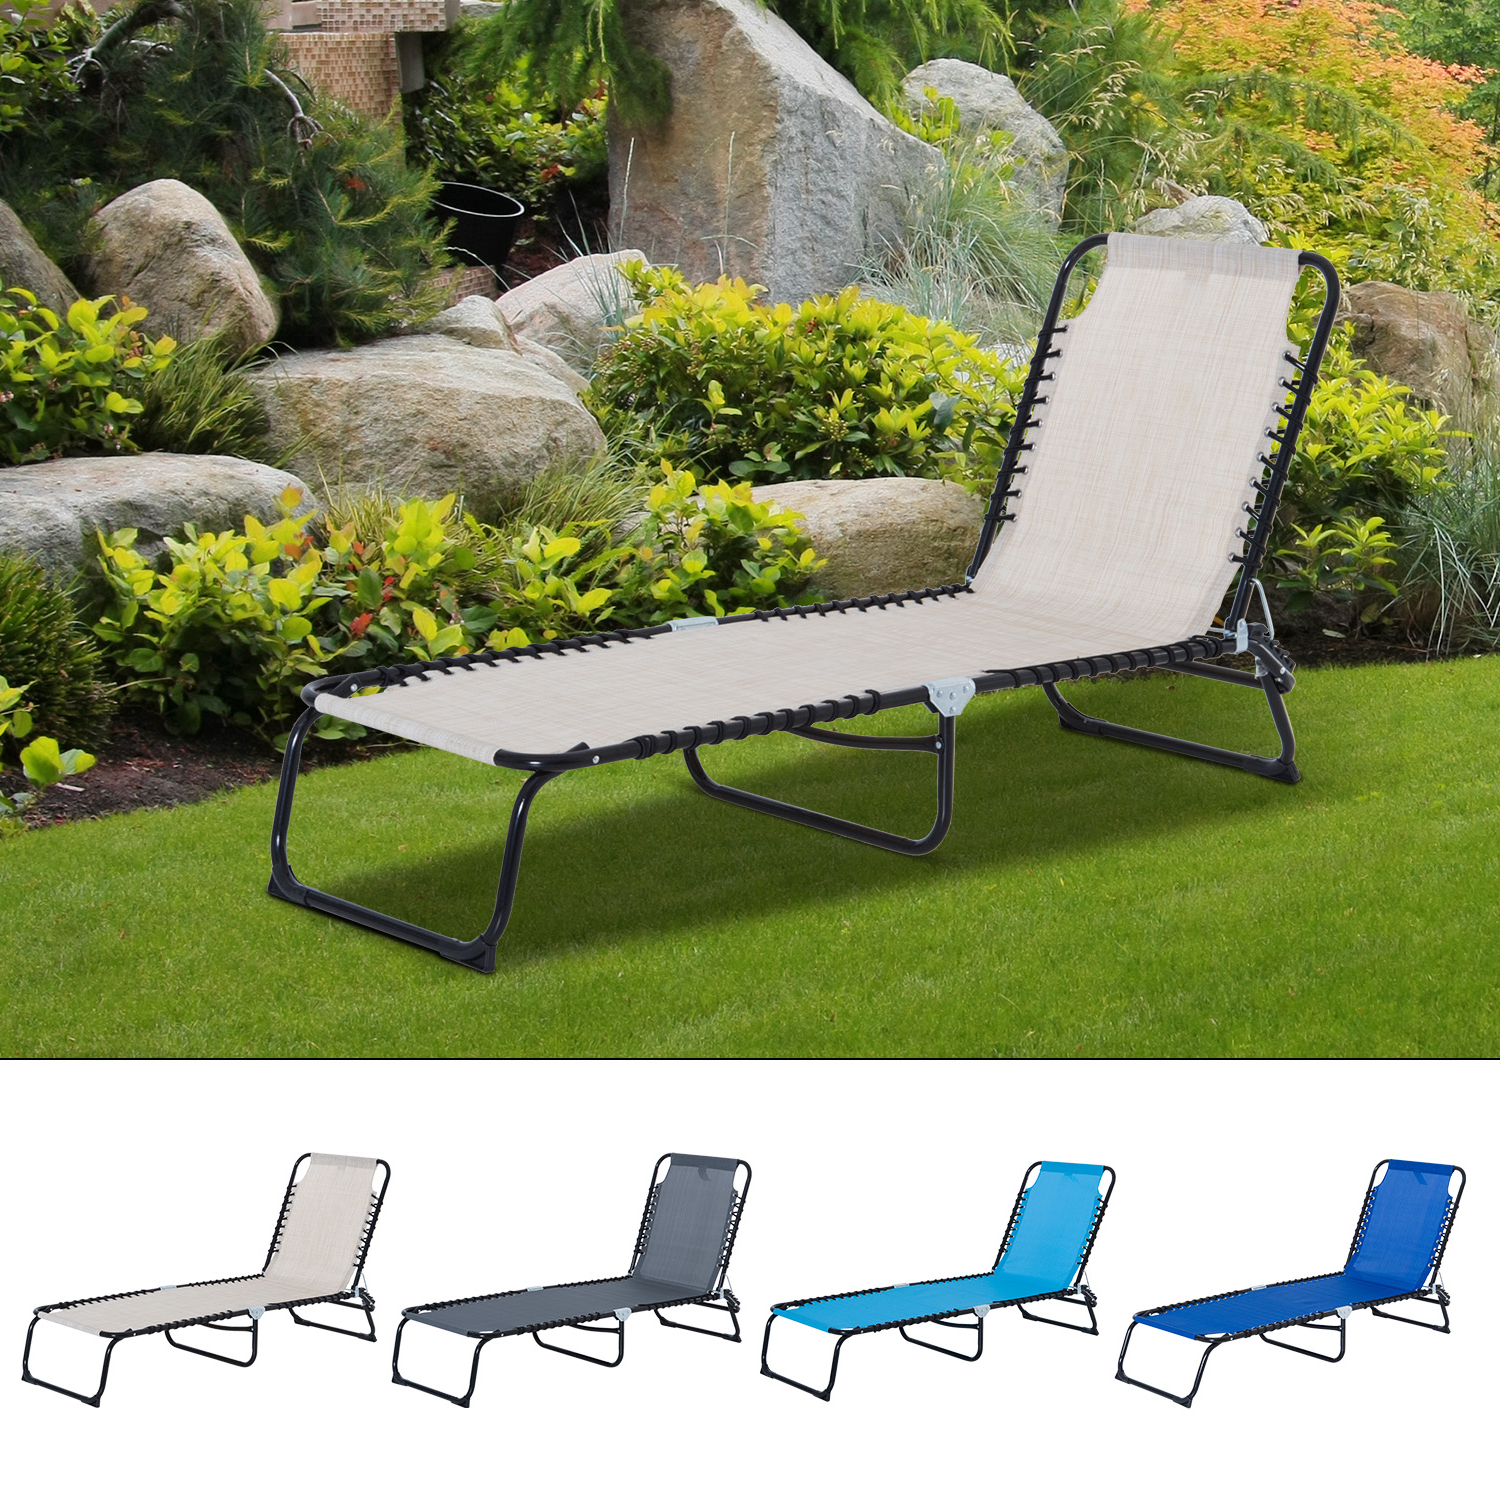 Portable Reclining Beach Chaise Lounge Folding Chairs In Favorite Details About 3 Position Portable Reclining Beach Chaise Lounge Adjustable  Sleeping Bed (Gallery 10 of 25)